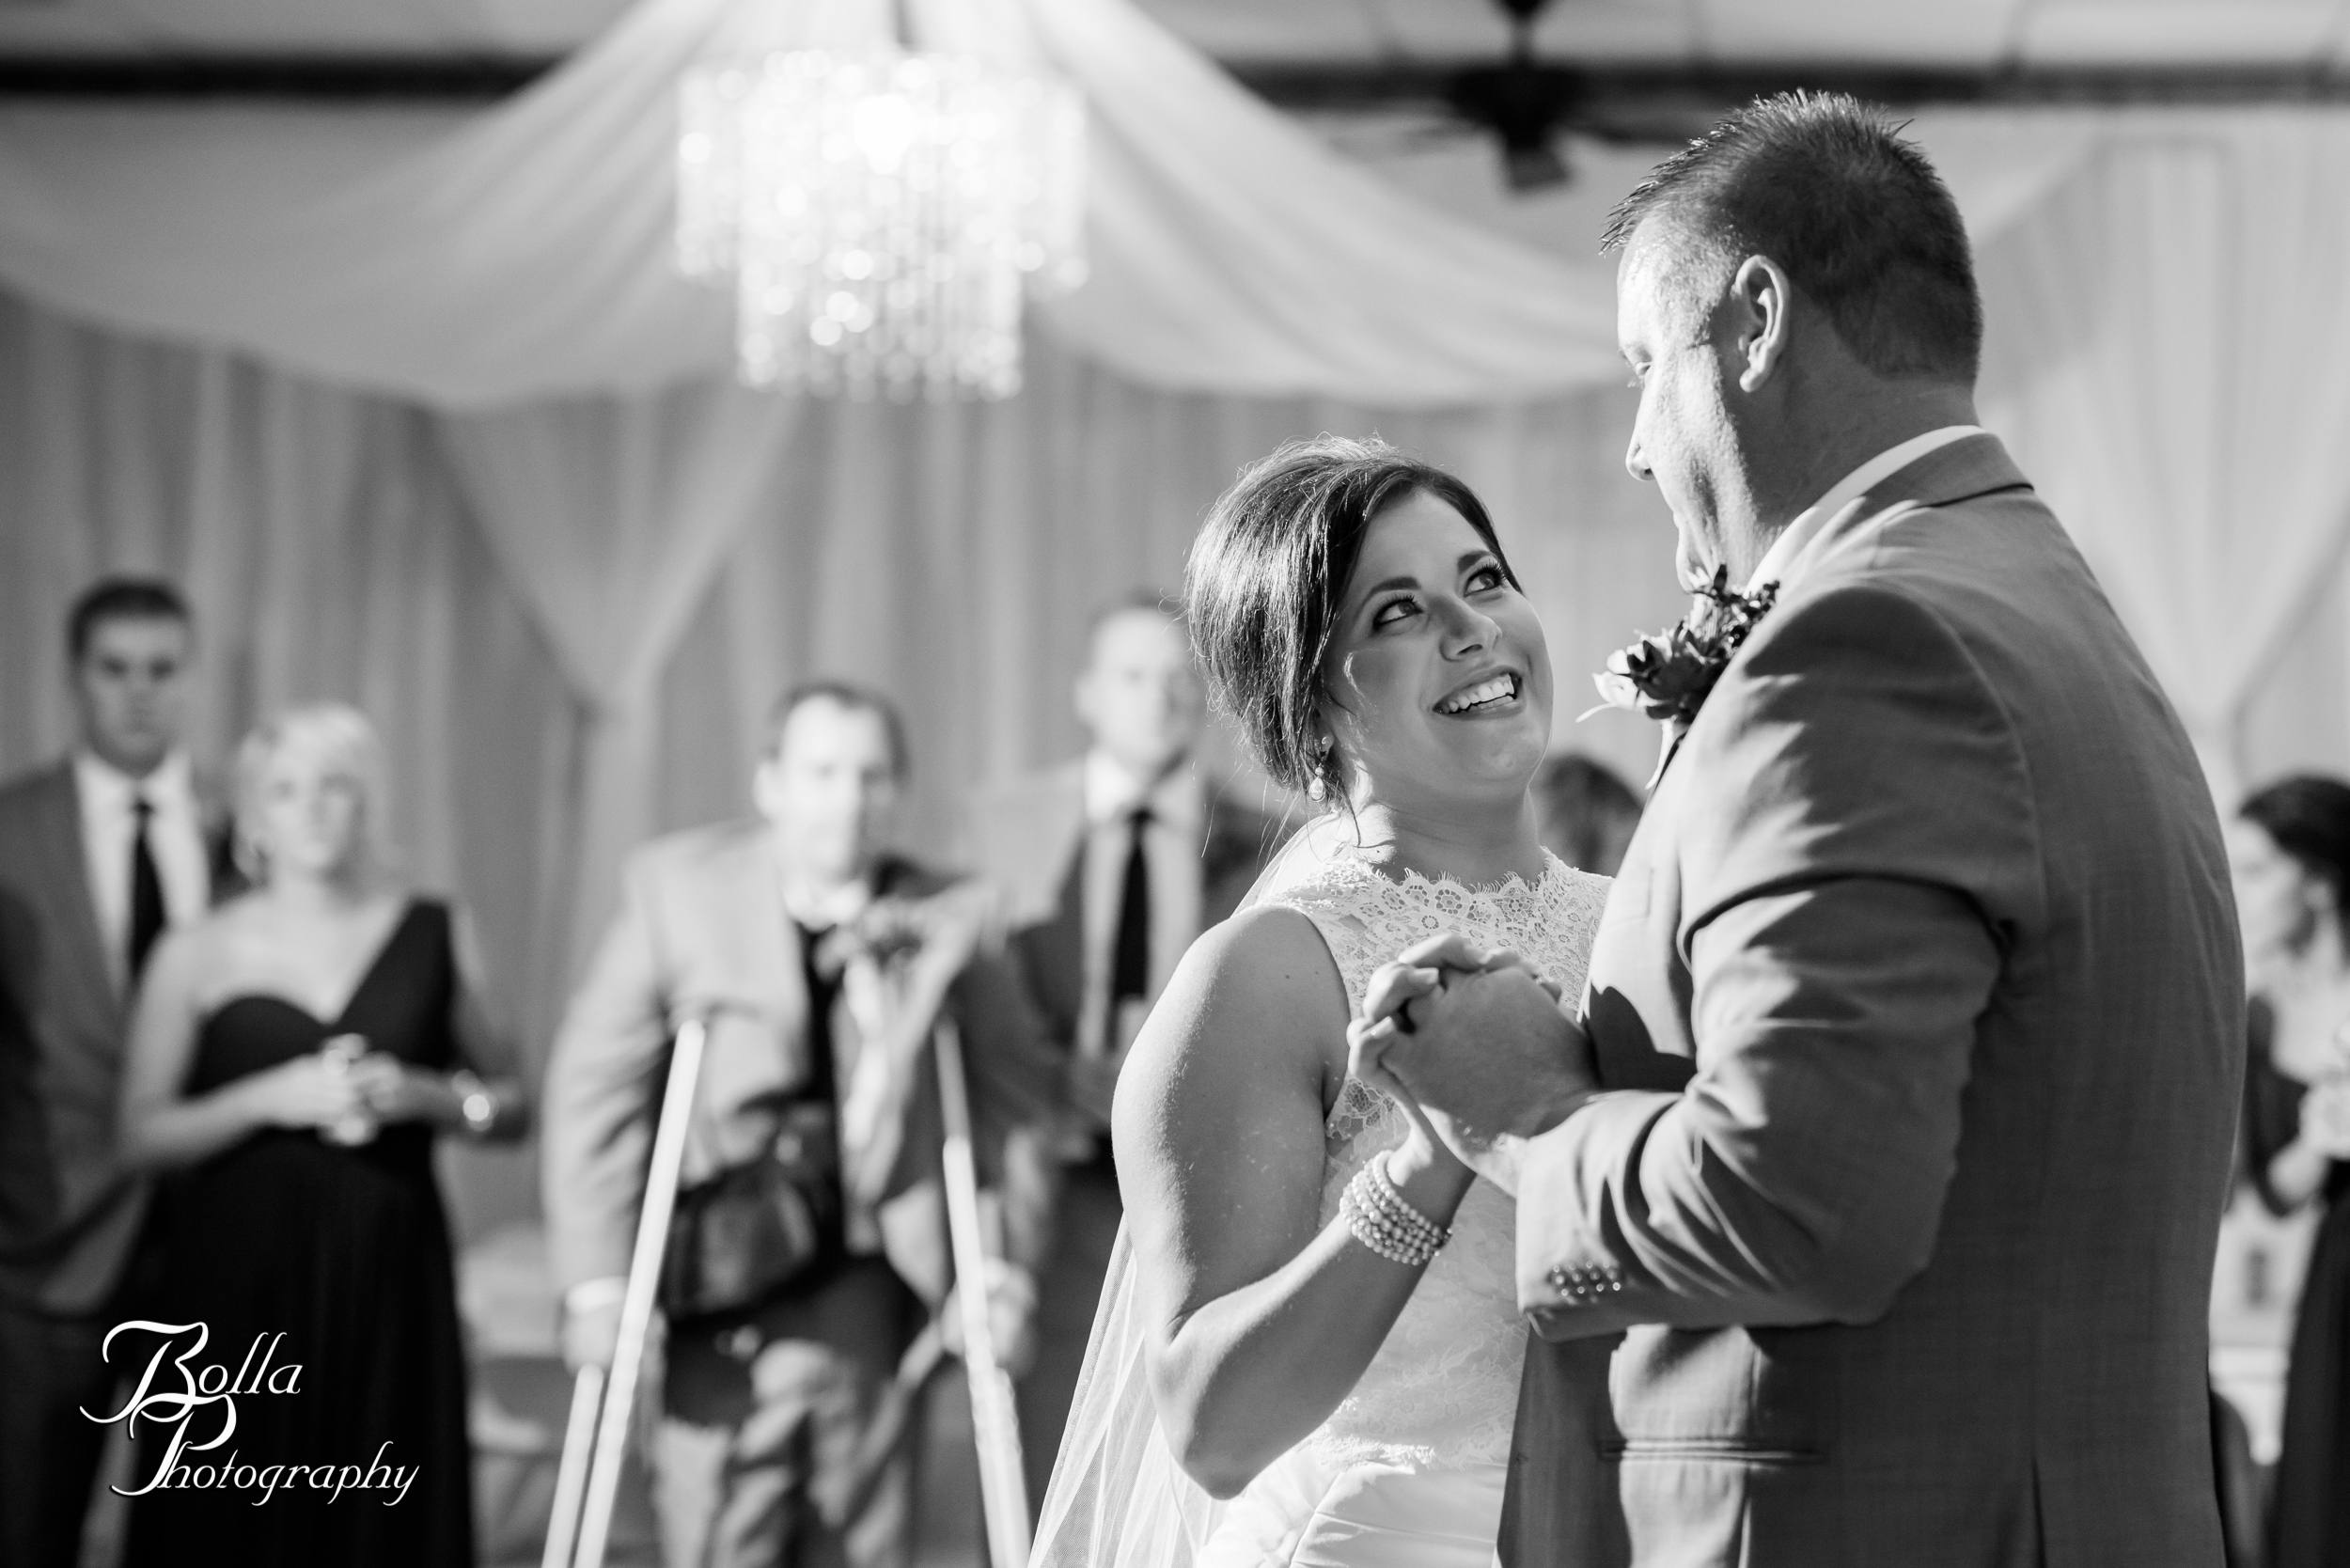 Bolla_photography_edwardsville_wedding_photographer_st_louis_weddings_Heinzmann-0423.jpg